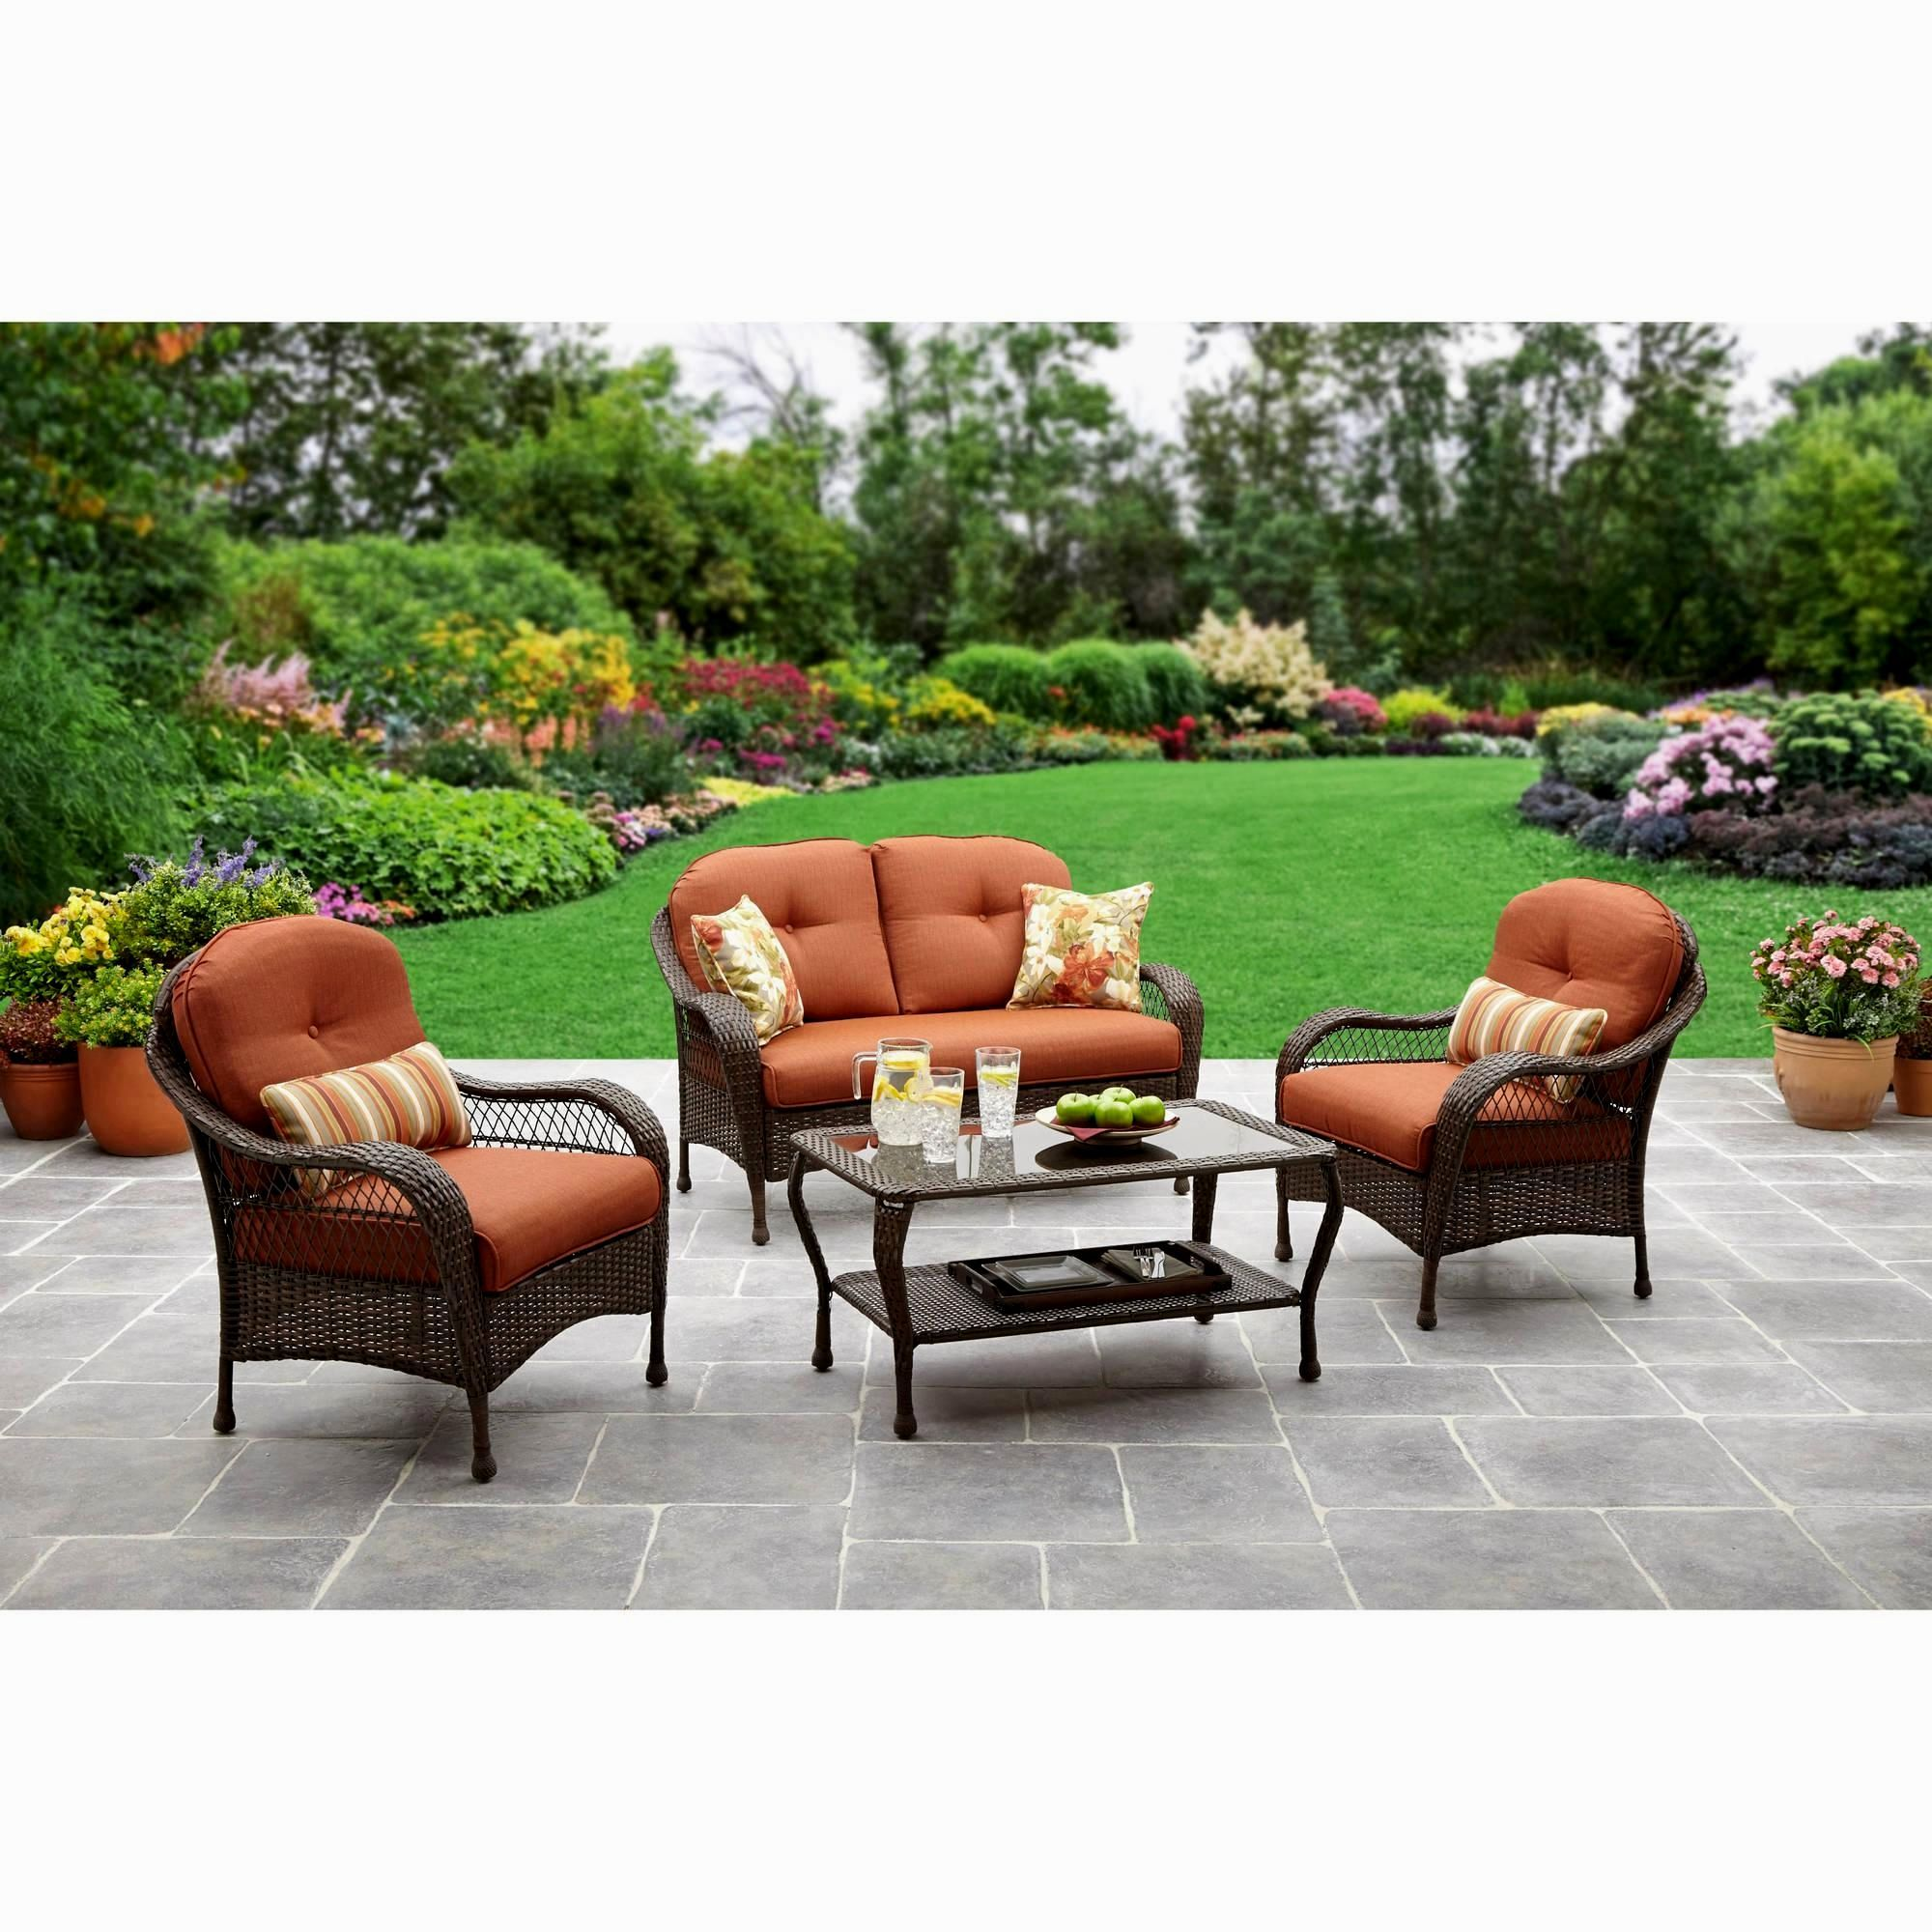 Better Homes Gardens At Walmart Outdoor Patio Replacement